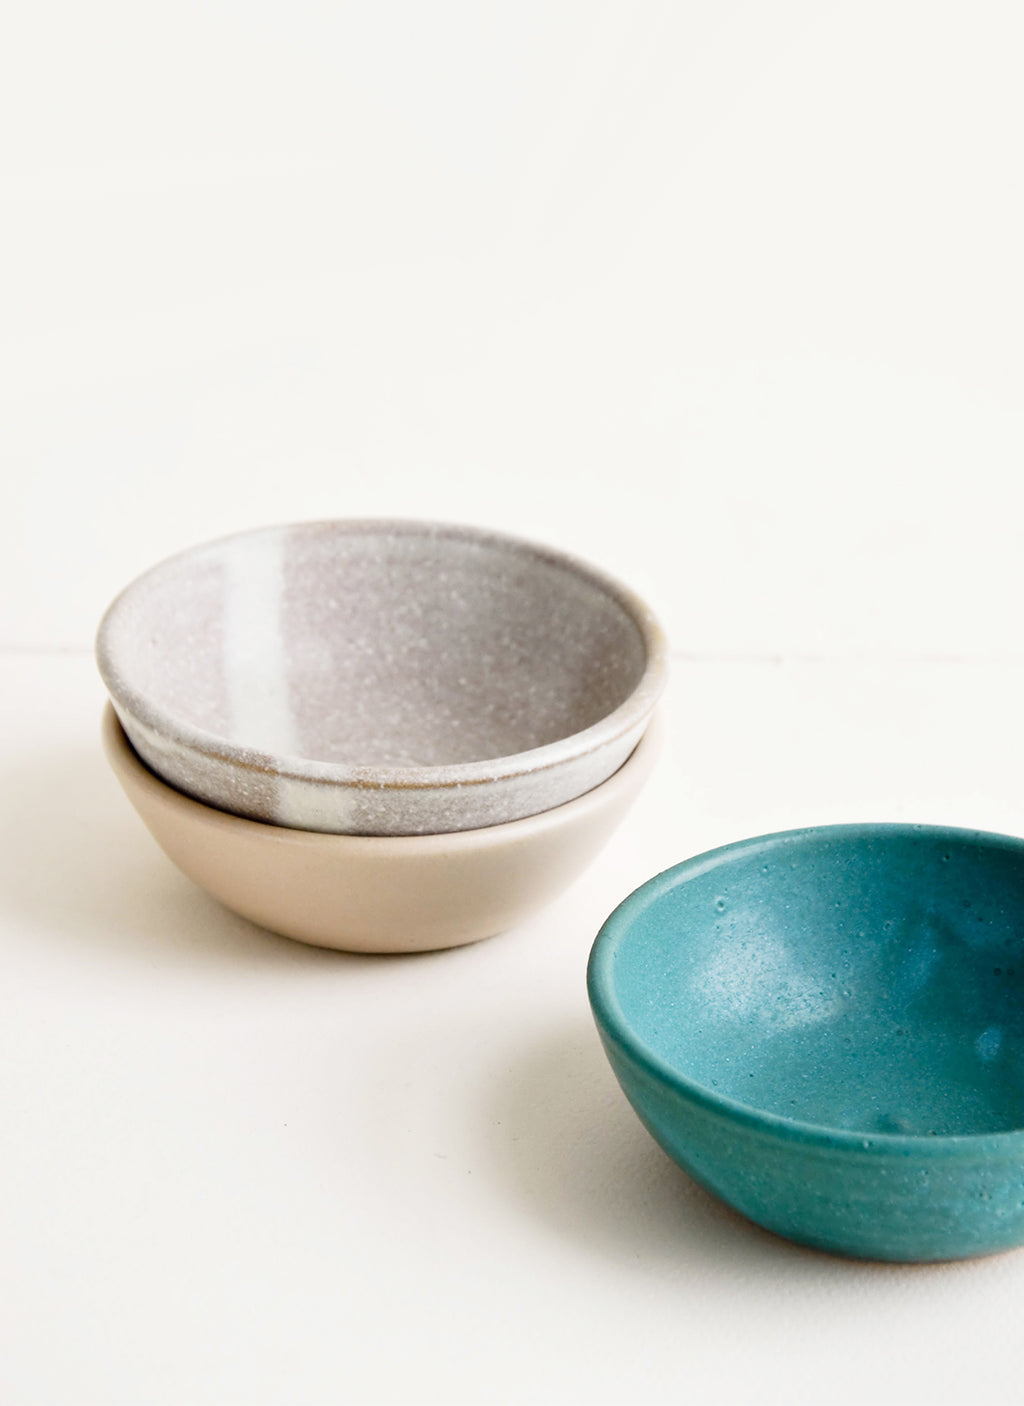 Pinch Bowl / Sand: Handmade ceramic pinch bowls in a mix of colors